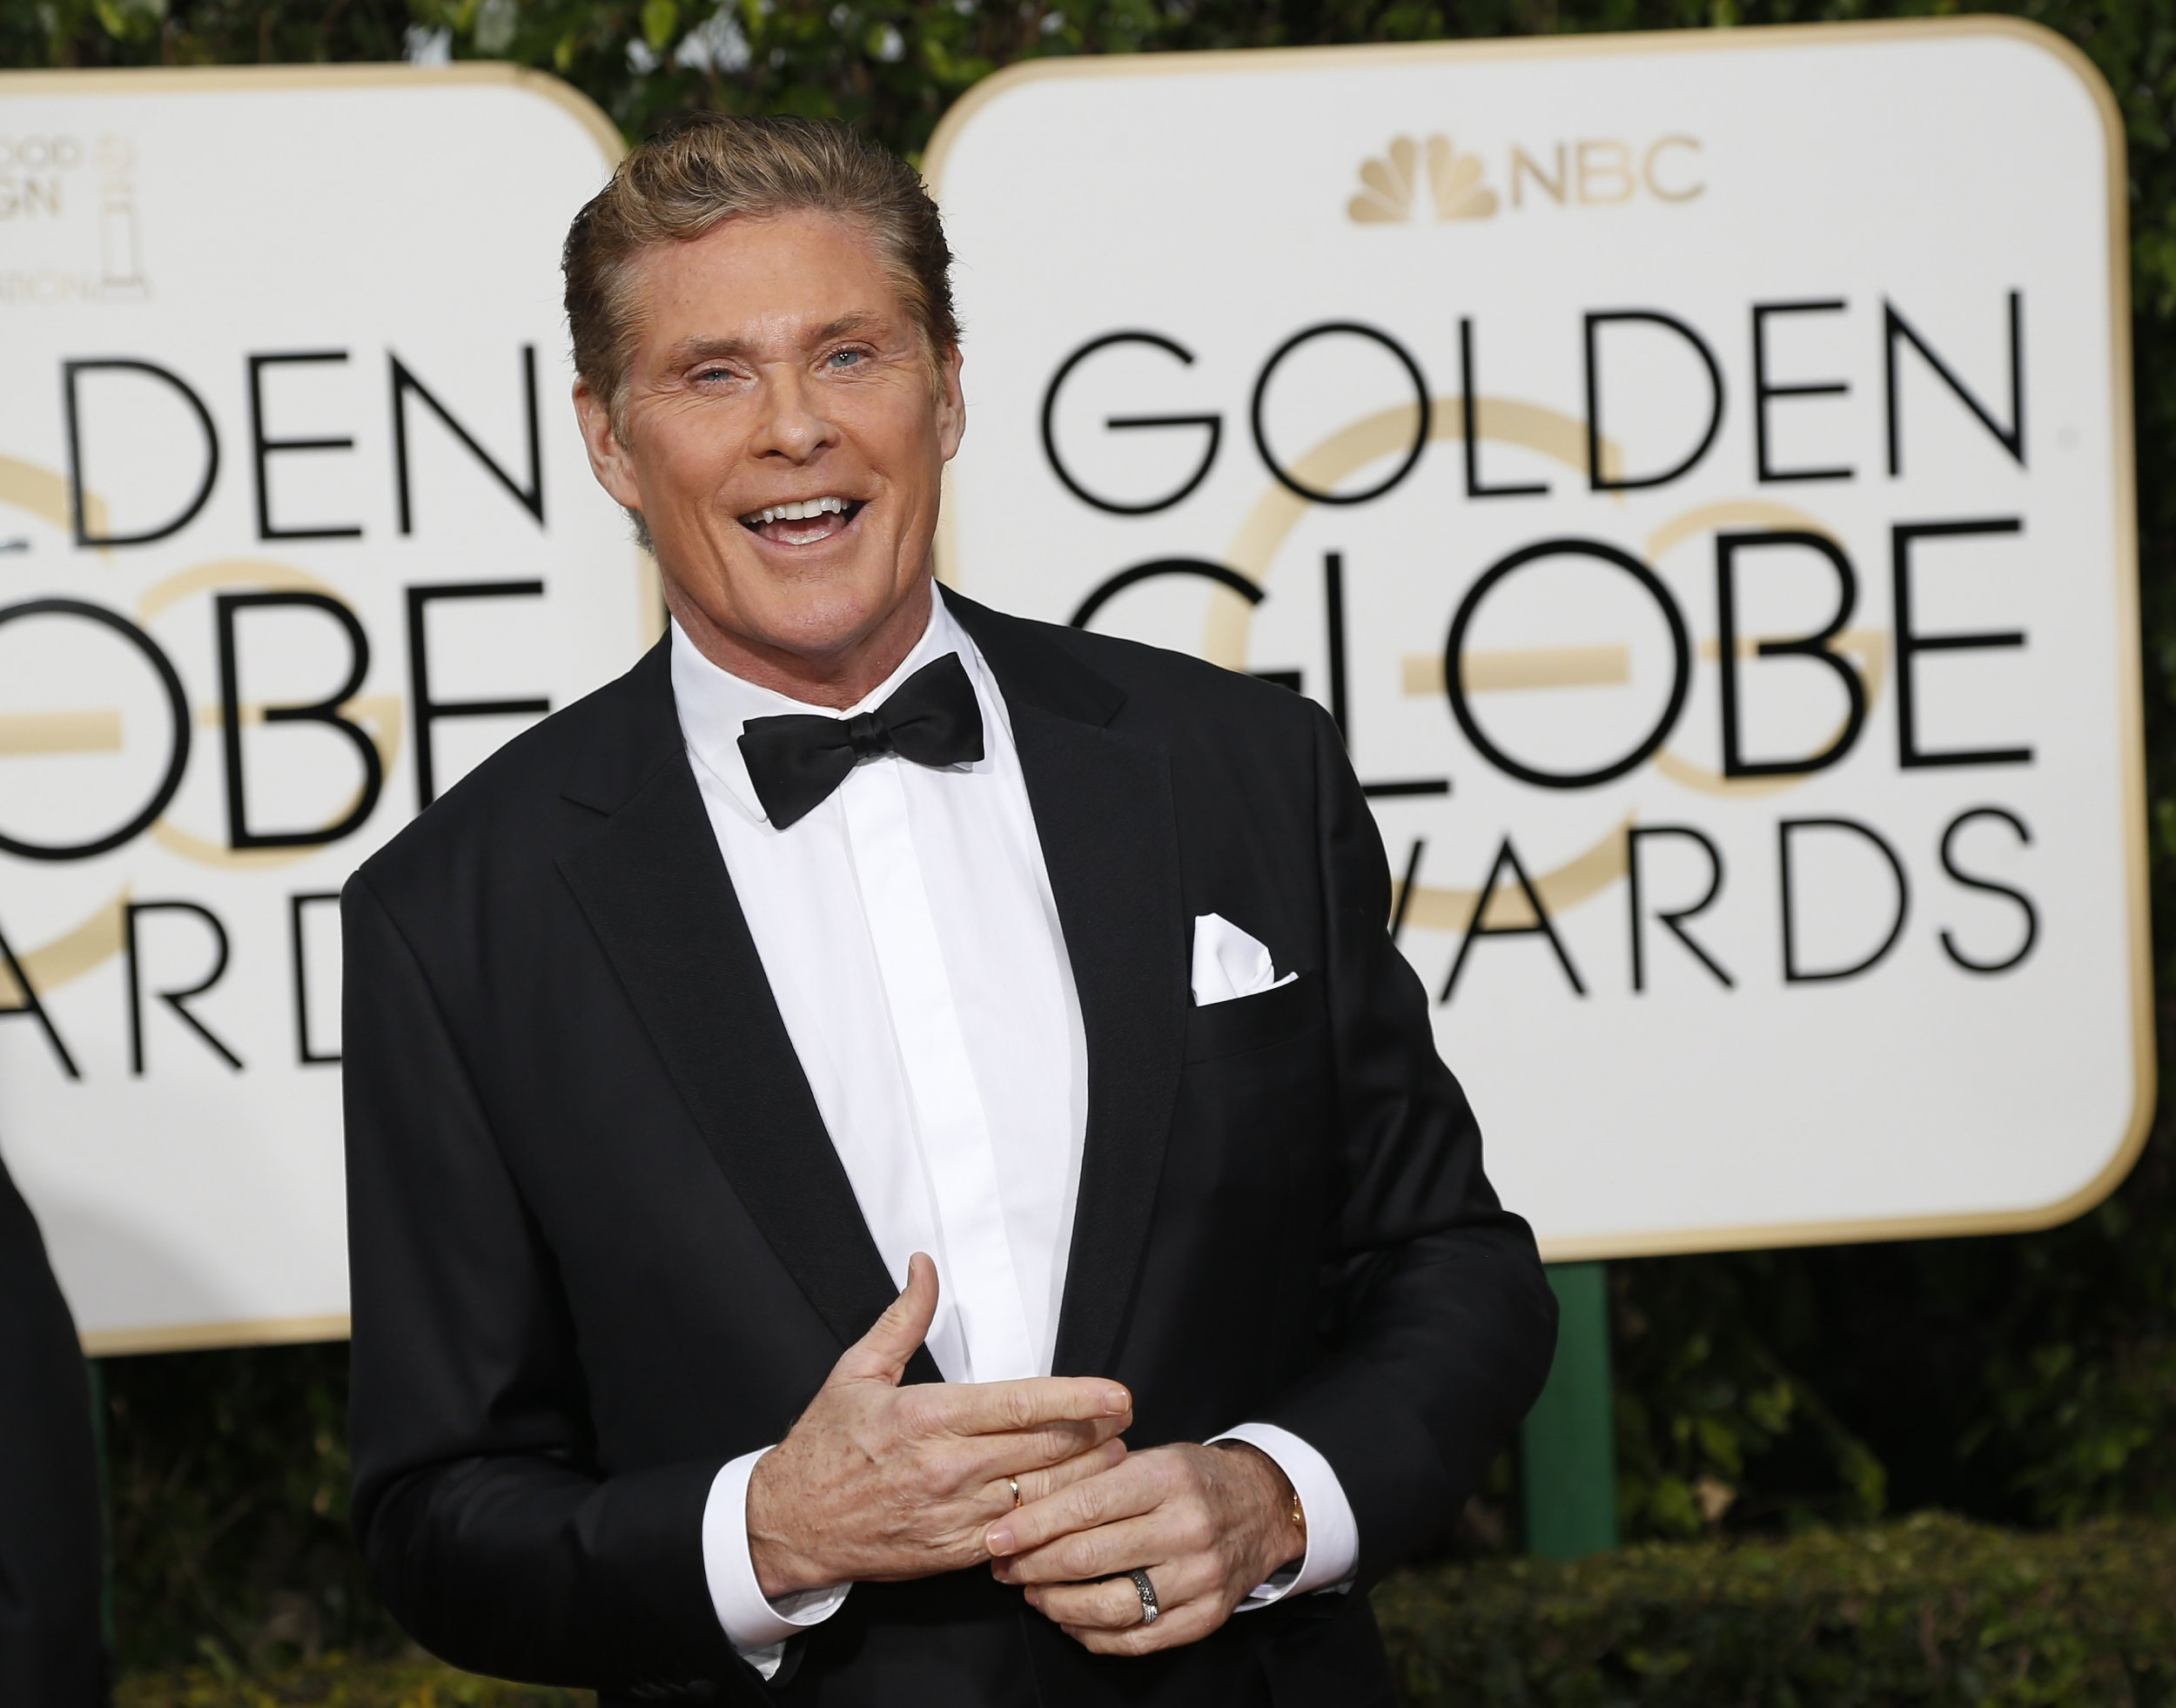 David Hasselhoff at the Golden Globes